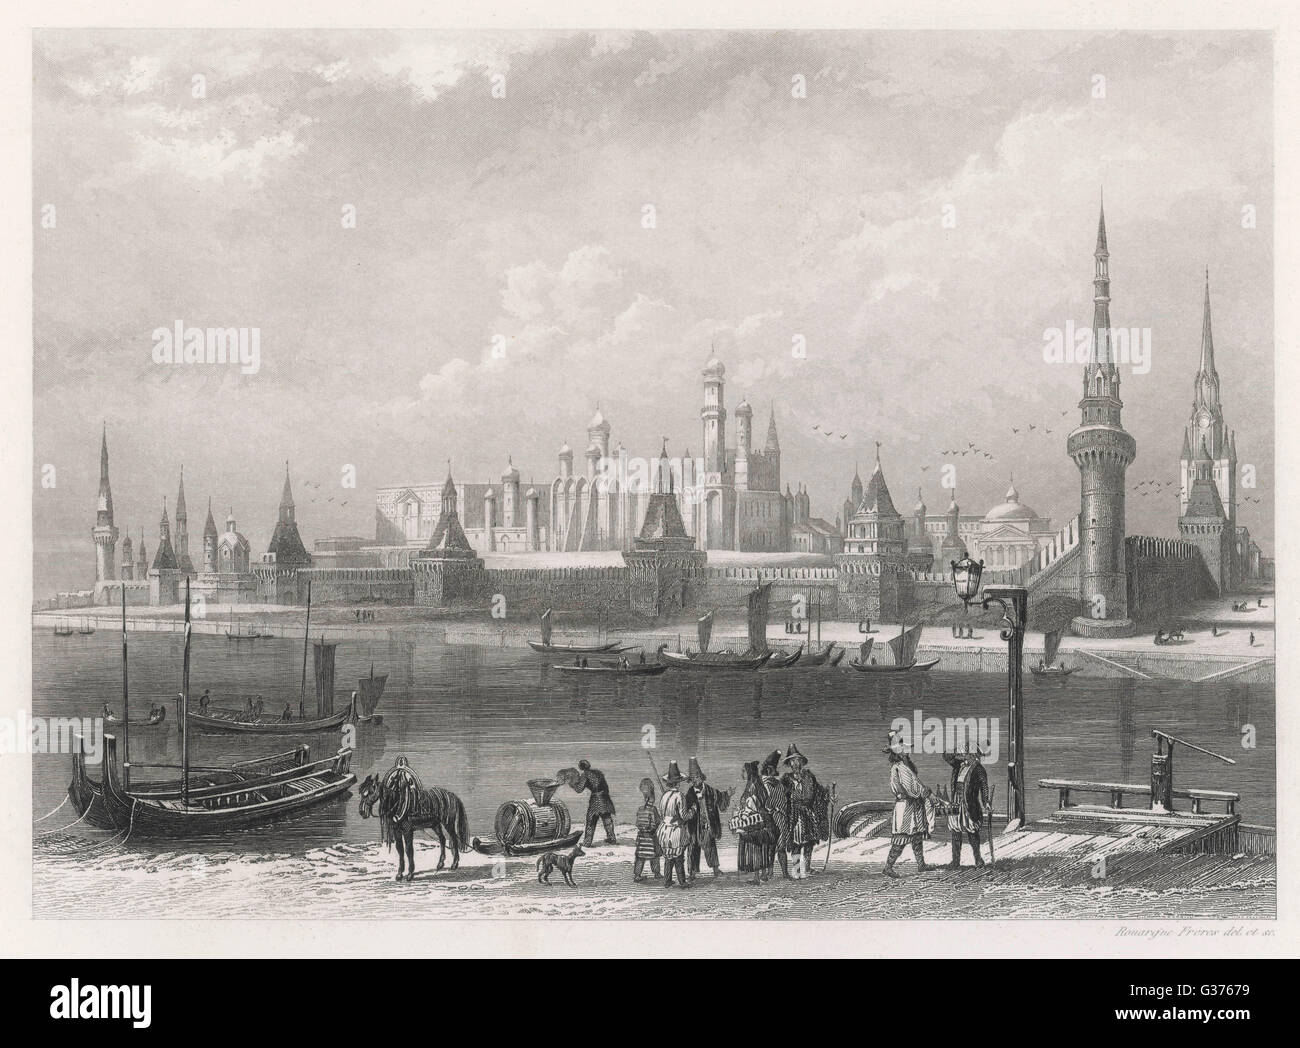 A wintry view of the Kremlin,  seen across the Moskva river         Date: circa 1840 - Stock Image